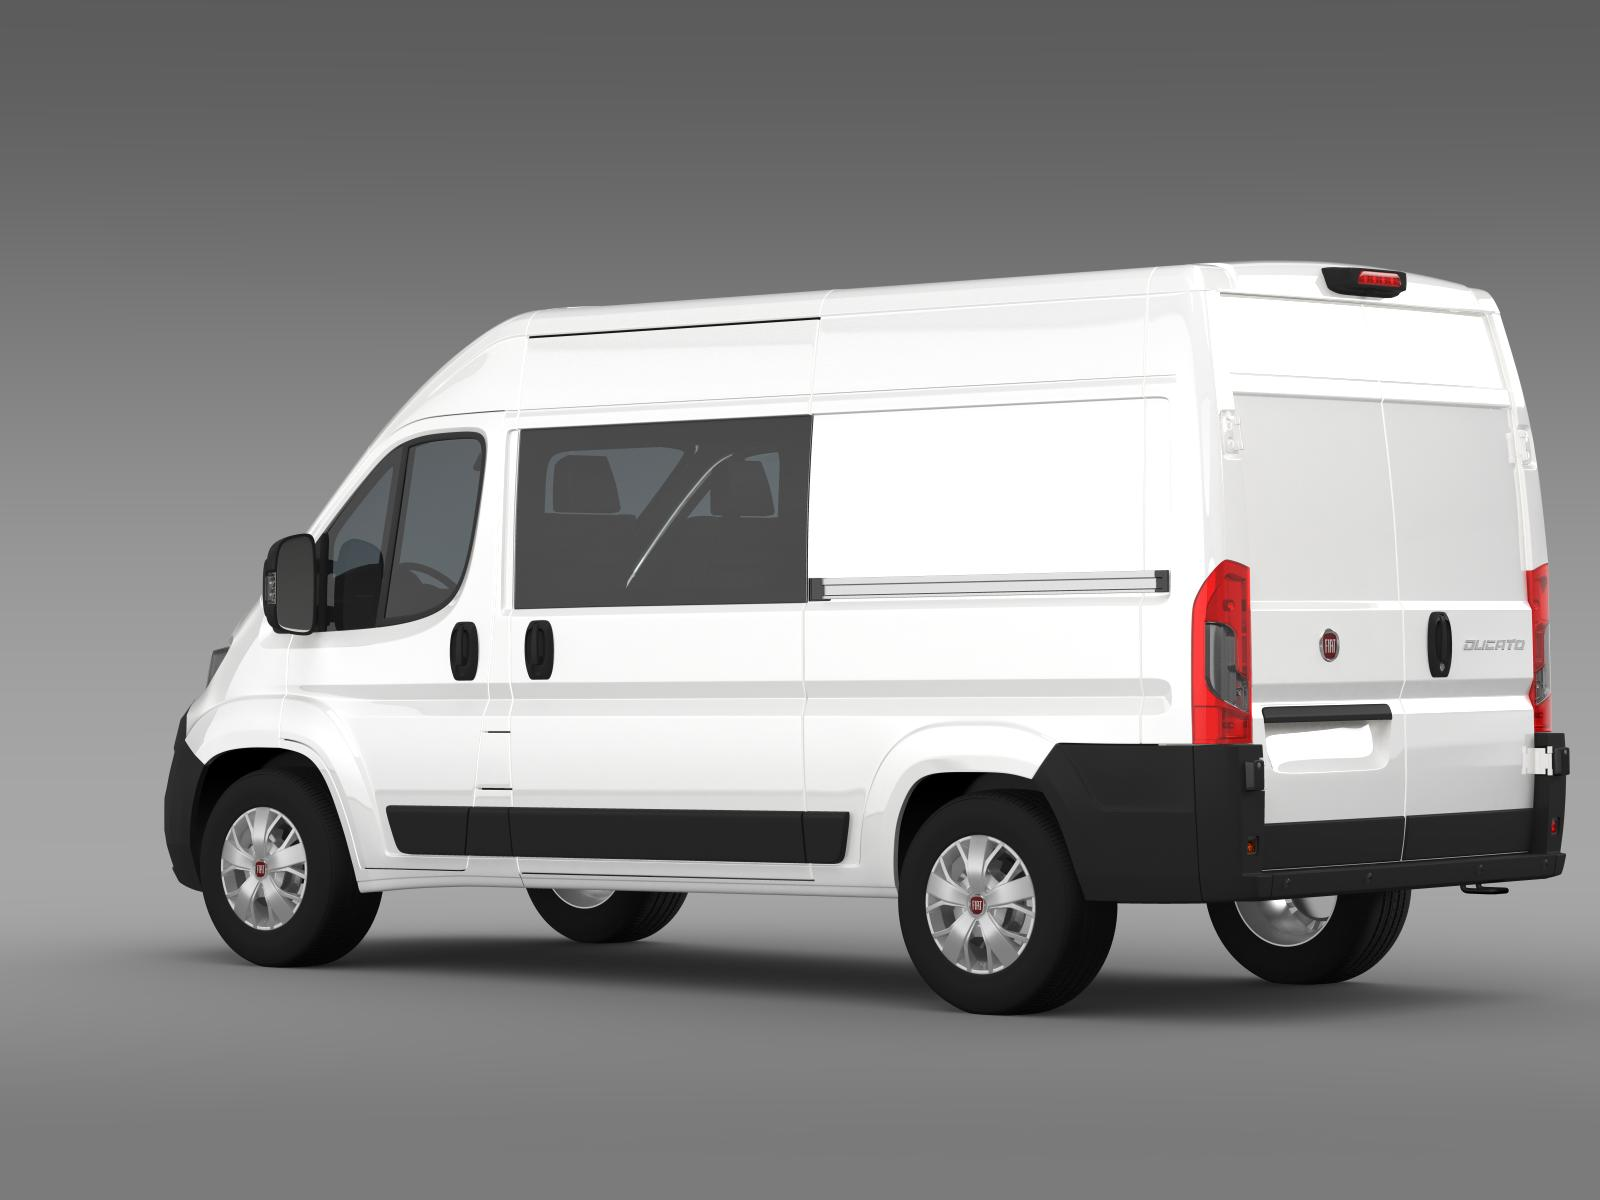 fiat ducato combi van 2015 3d model buy fiat ducato. Black Bedroom Furniture Sets. Home Design Ideas